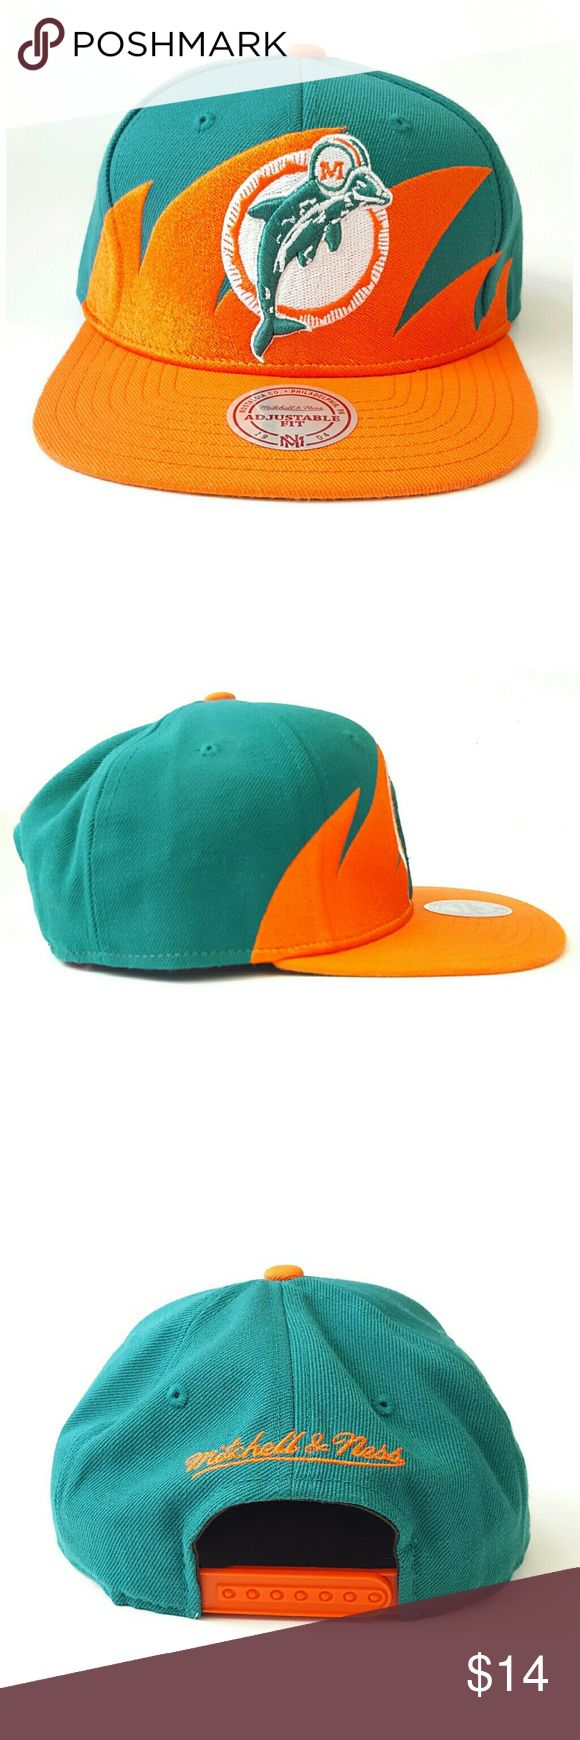 Miami Dolphins NFL Snapback Hat Mitchell & Ness, Miami Dolphins, NFL, vintage collection, snapback style, normal signs of wear, smudges on bill as pictured, good condition, one size fits all. Mitchell & Ness Accessories Hats